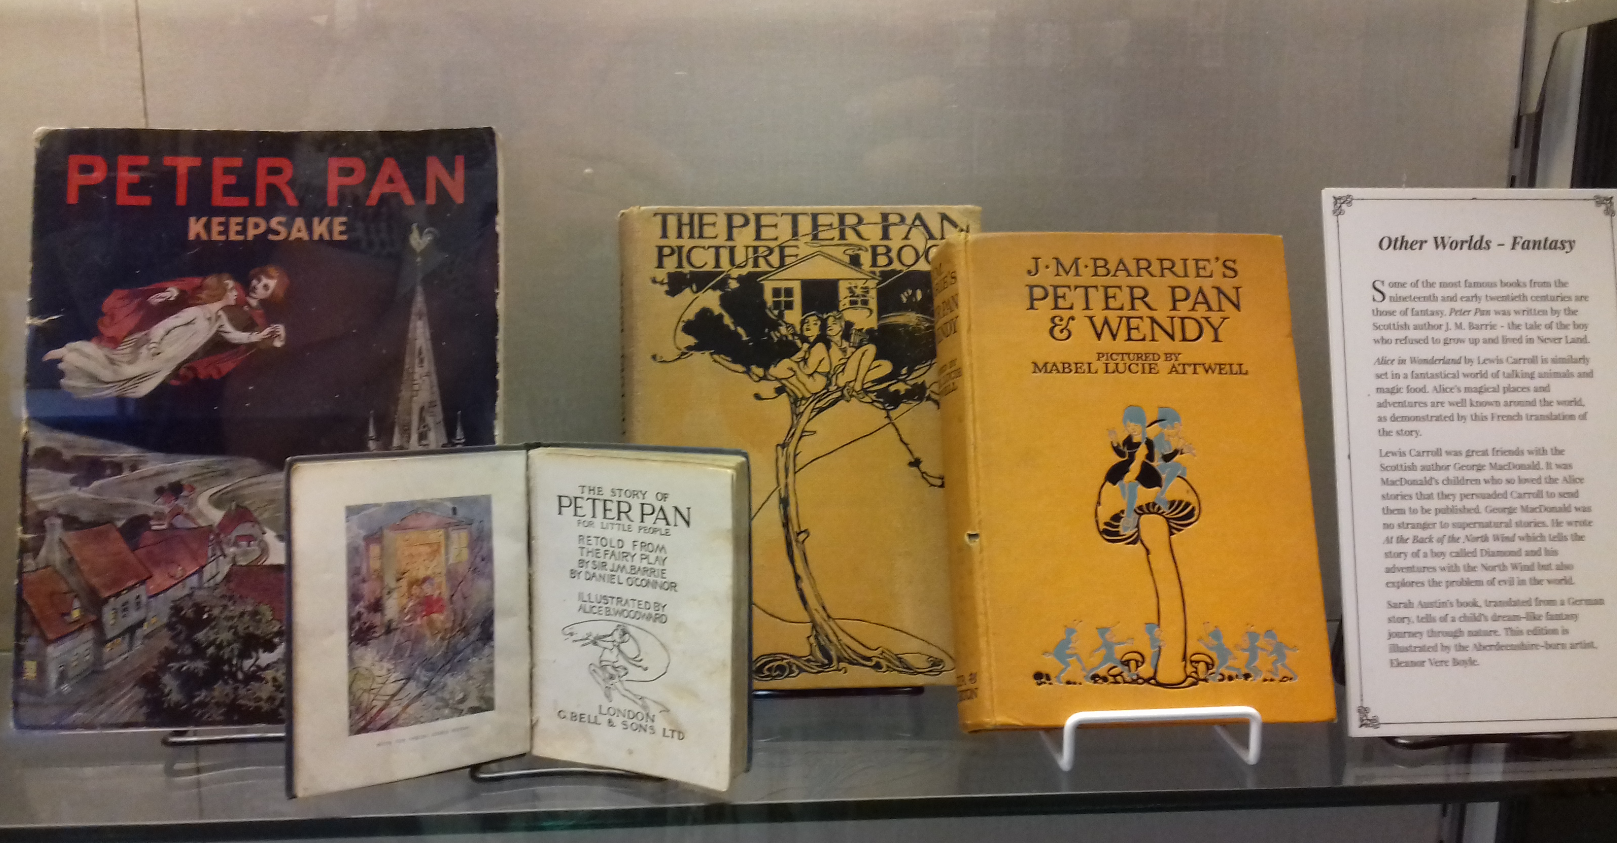 Editions of Peter Pan